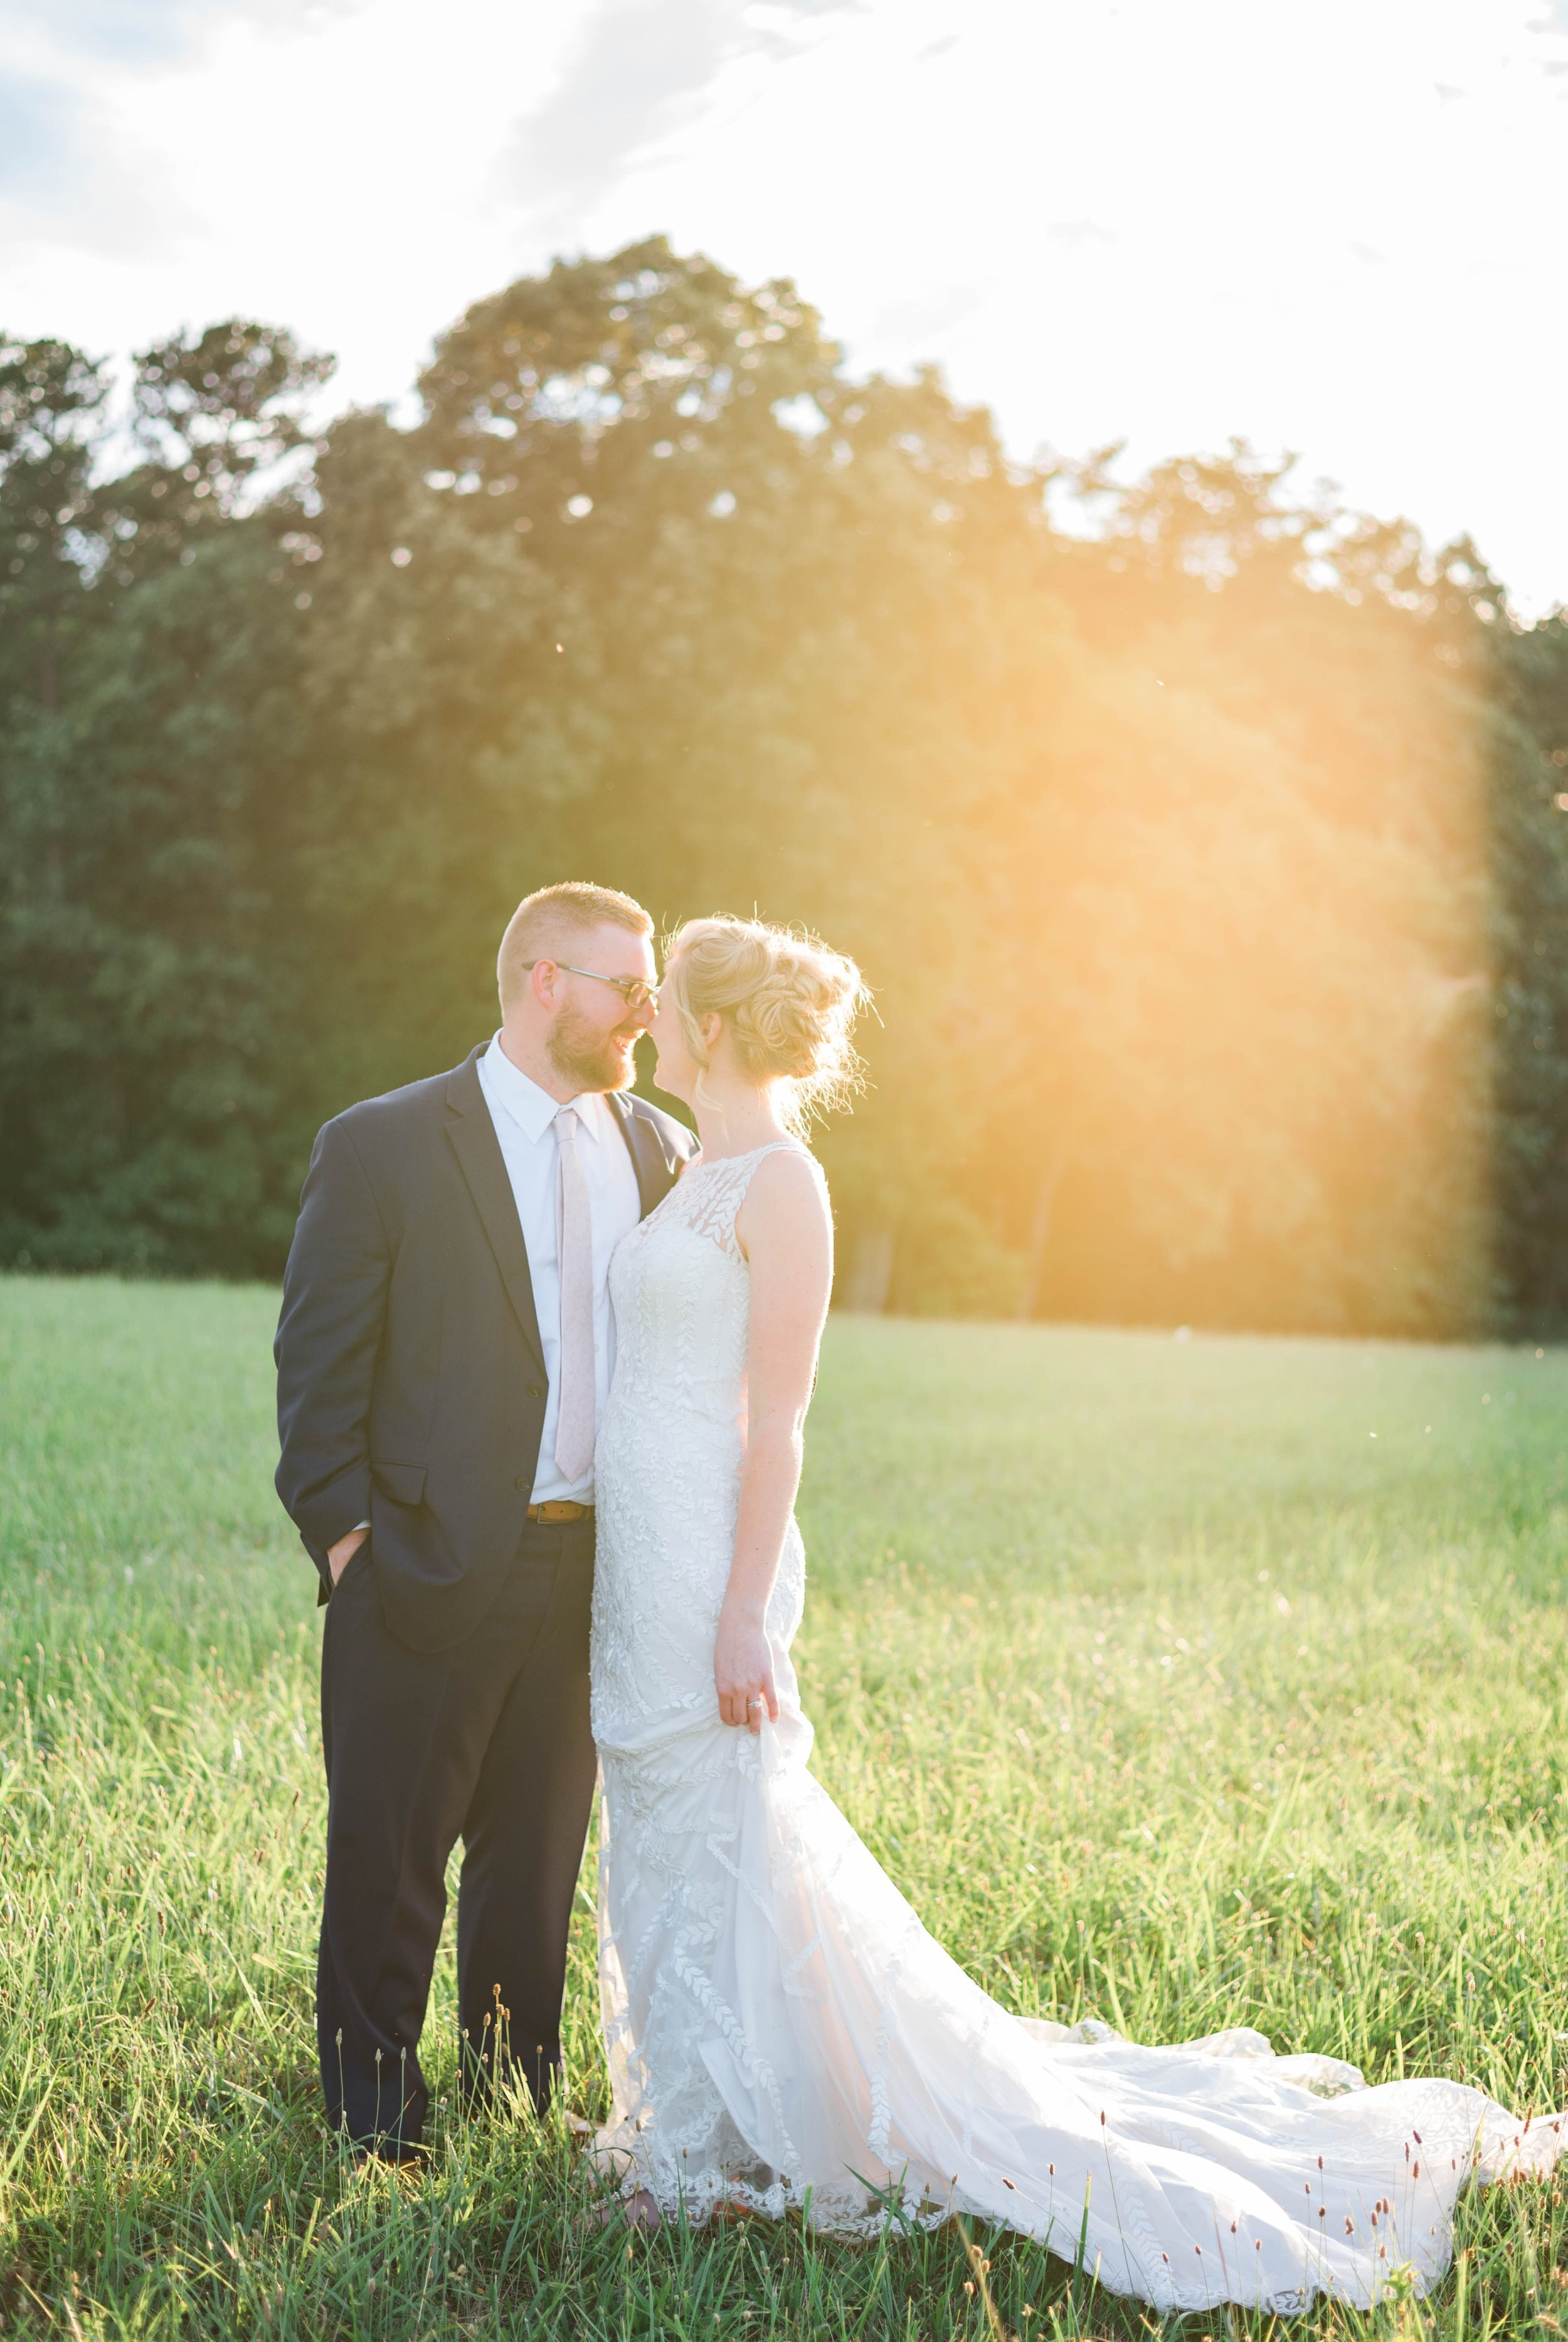 SorellaFarms_VirginiaWeddingPhotographer_BarnWedding_Lynchburgweddingphotographer_DanielleTyler 19.jpg